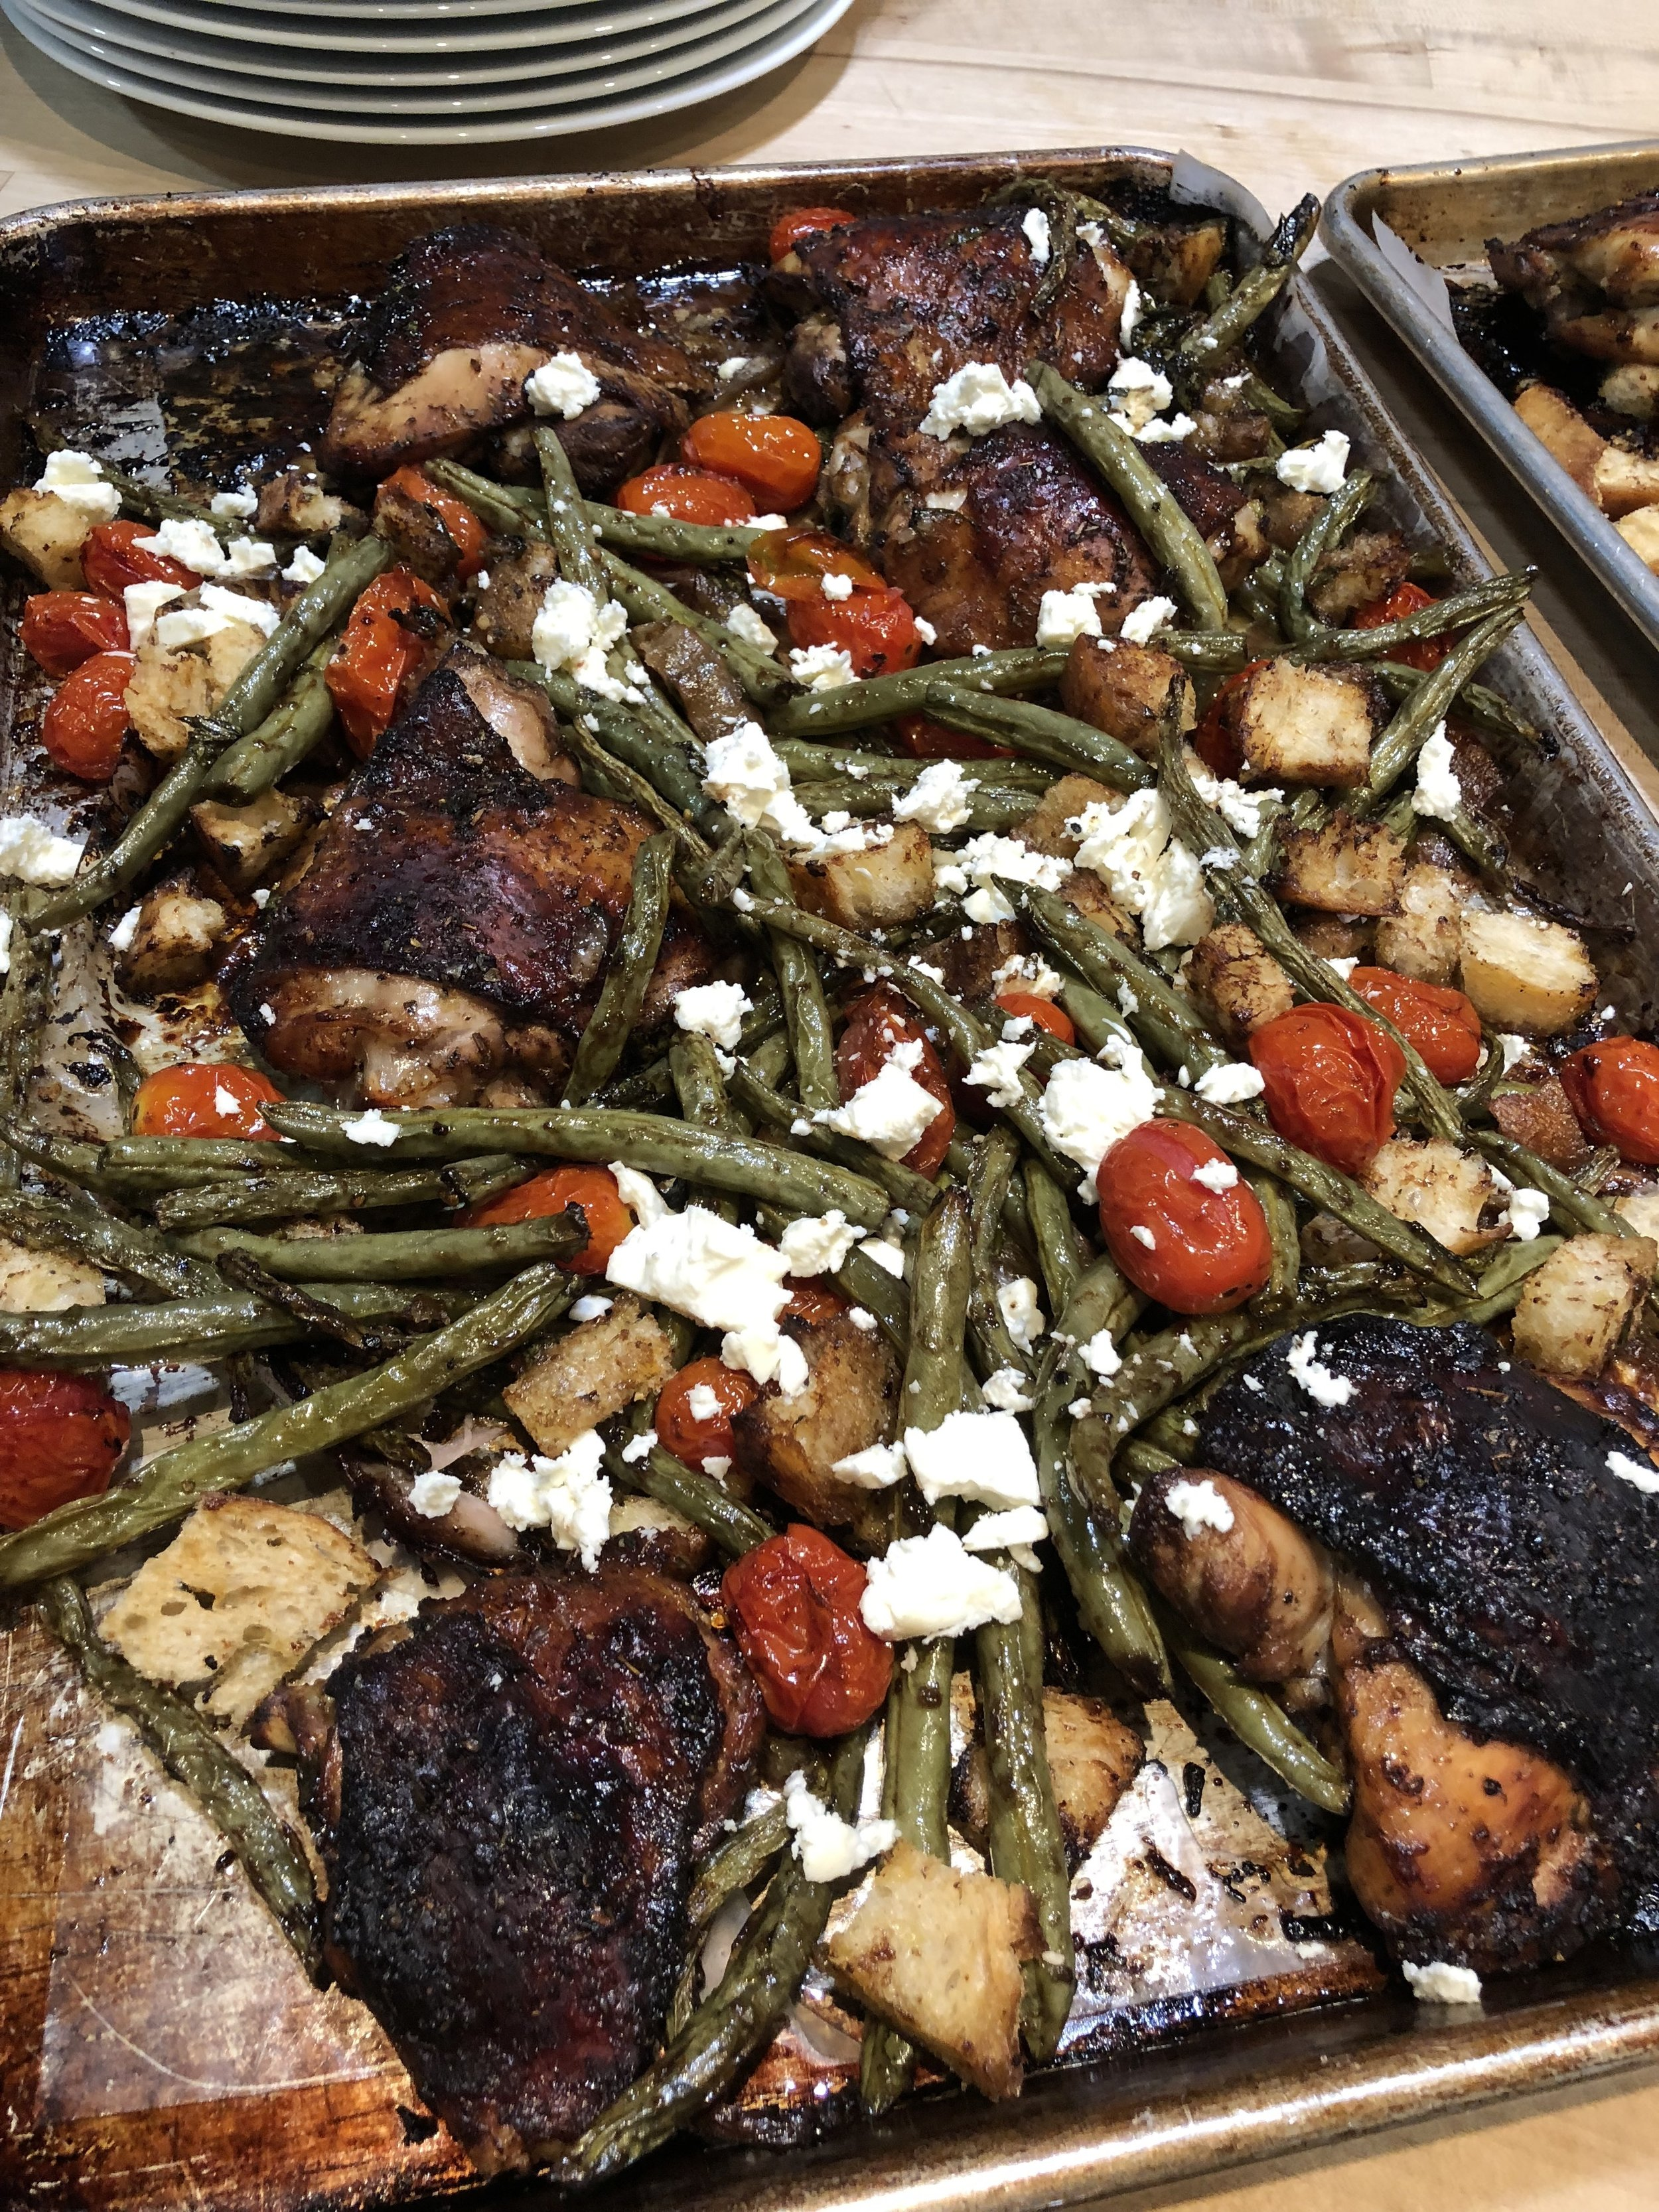 Feta- Brined Chicken with Roasted Green Beans and Tomatoes